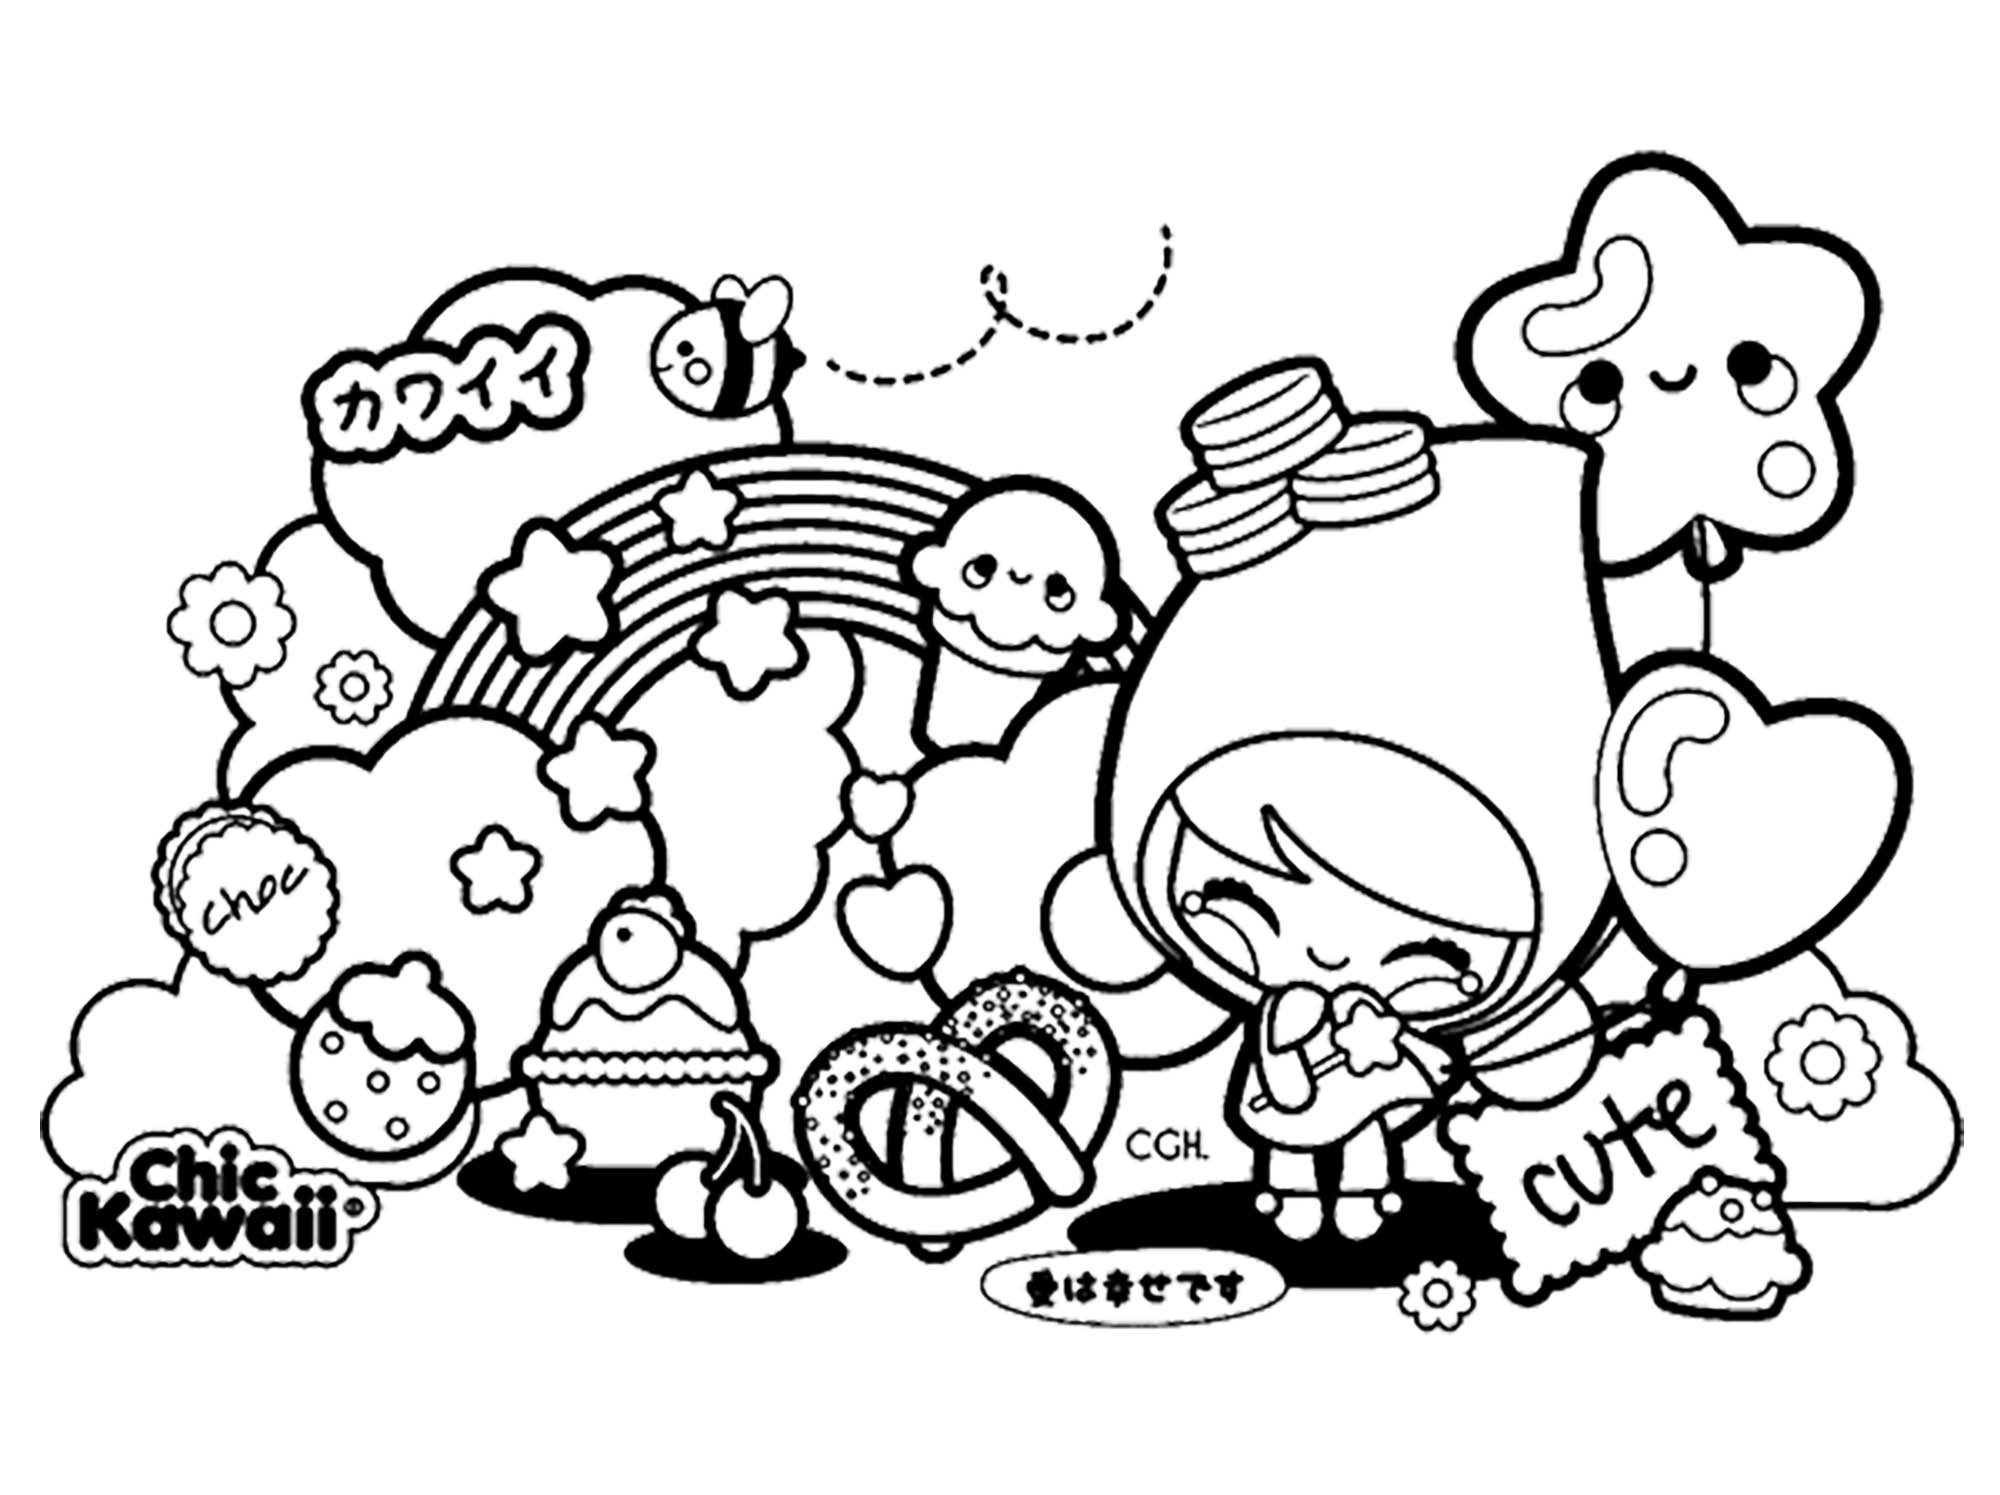 coloring pages for kids kawaii cute coloring pages best coloring pages for kids pages kids kawaii for coloring